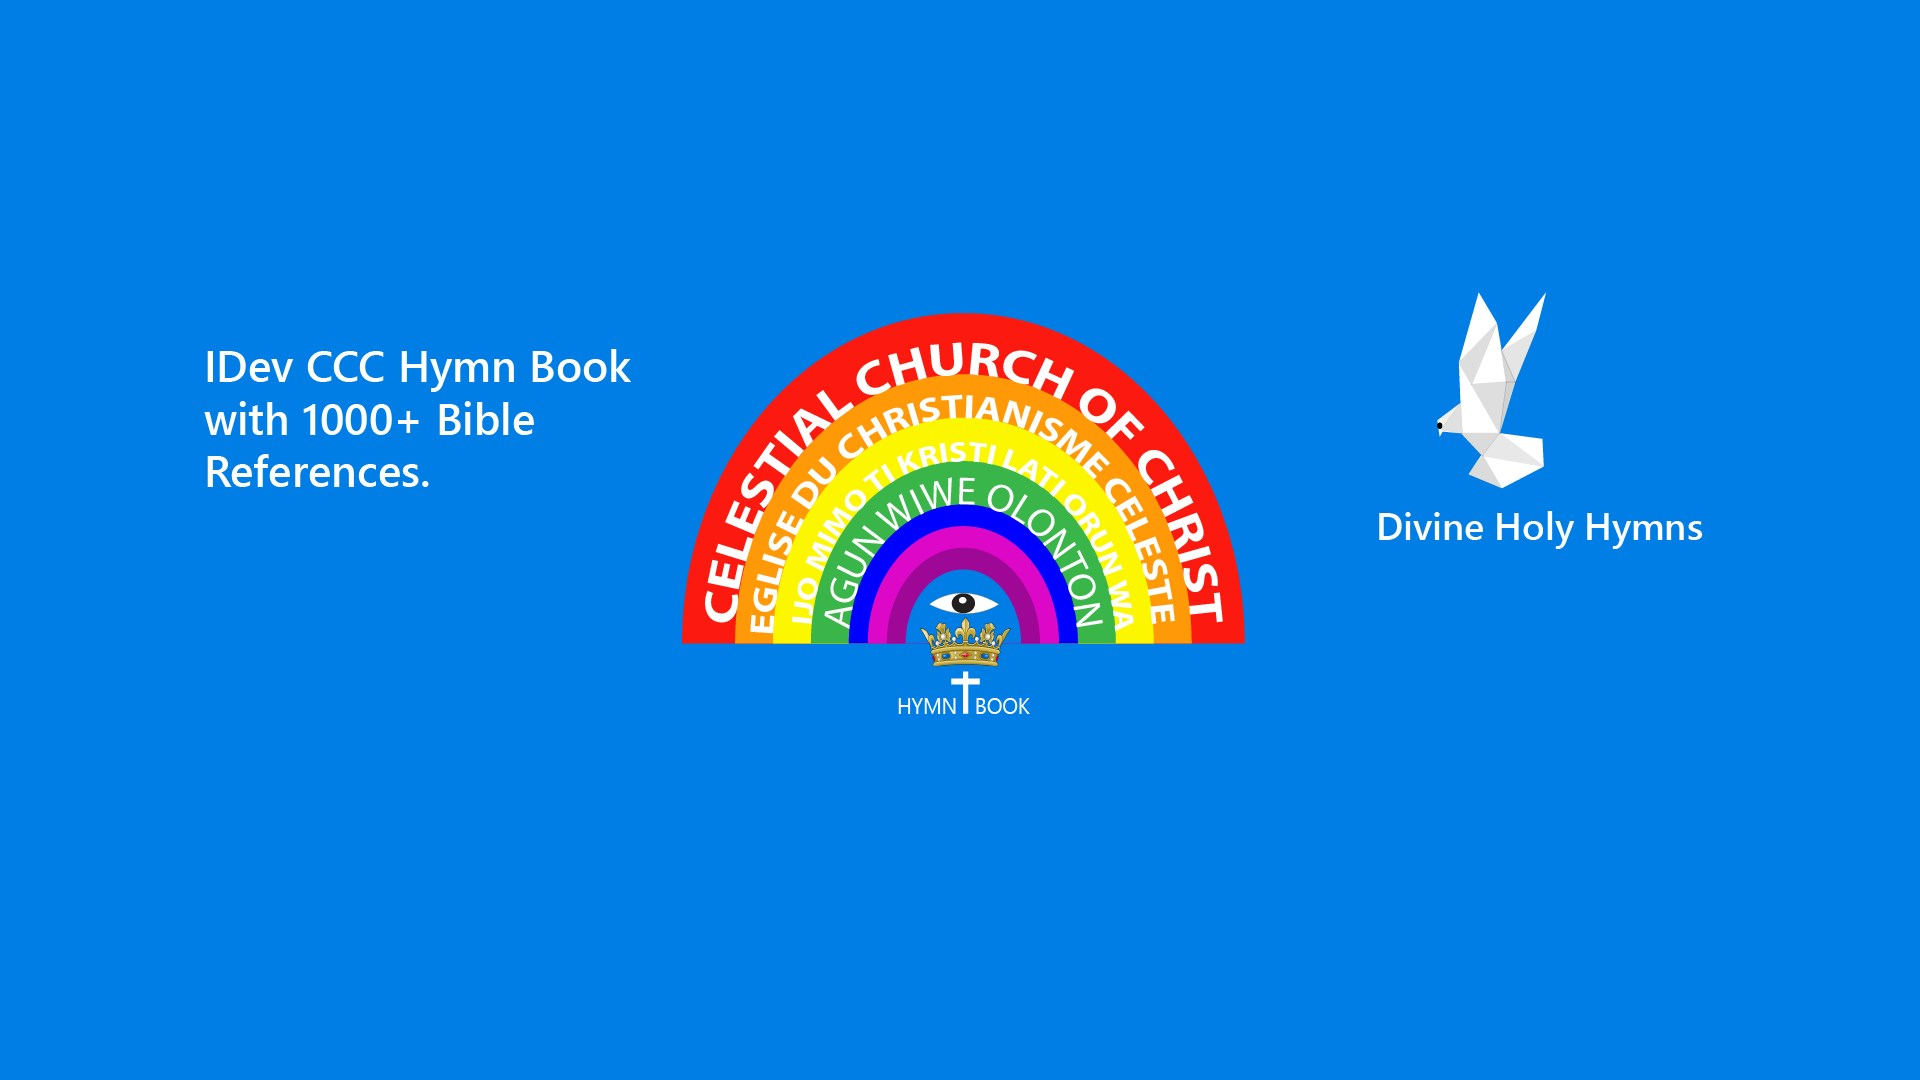 Get C C C Hymn Book with Bible References - Microsoft Store